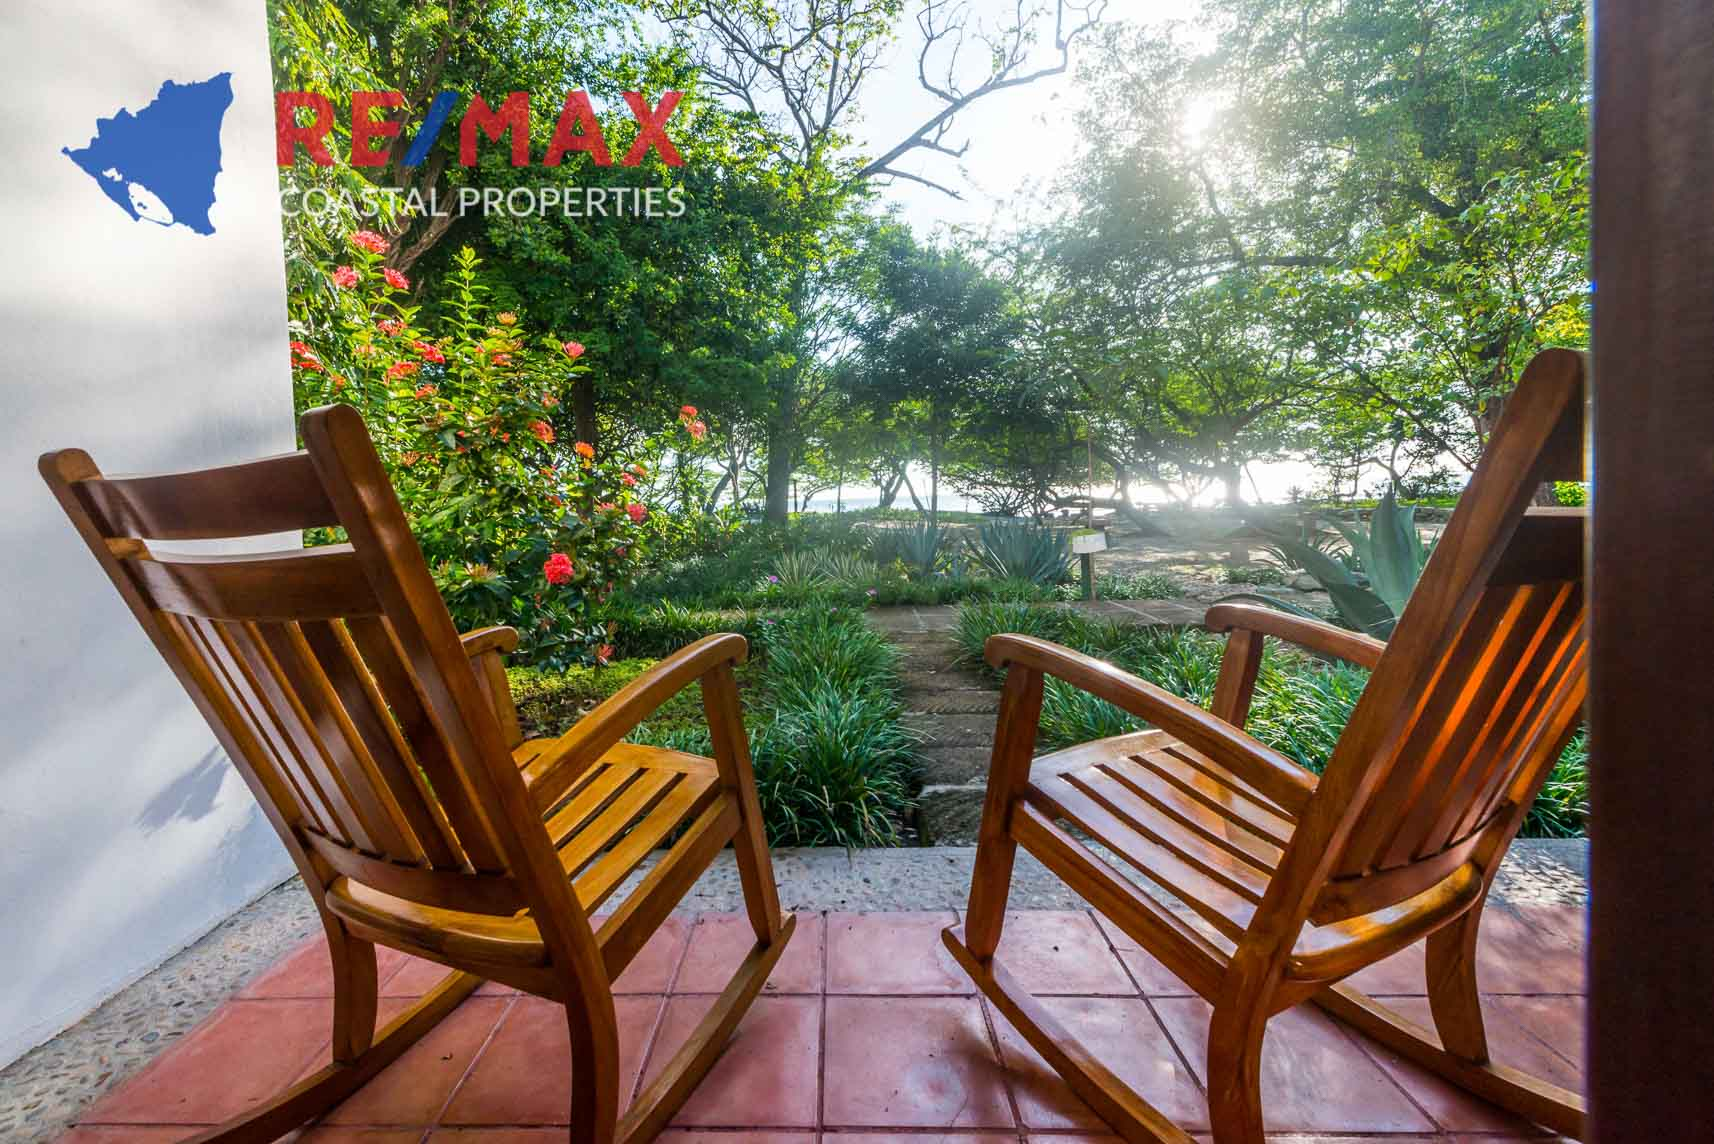 https://property-nicaragua.com/pedrodev/wp-content/uploads/2012/06/Playa-Coco-Townhome-2-REMAX-Coastal-Properties-37.jpg